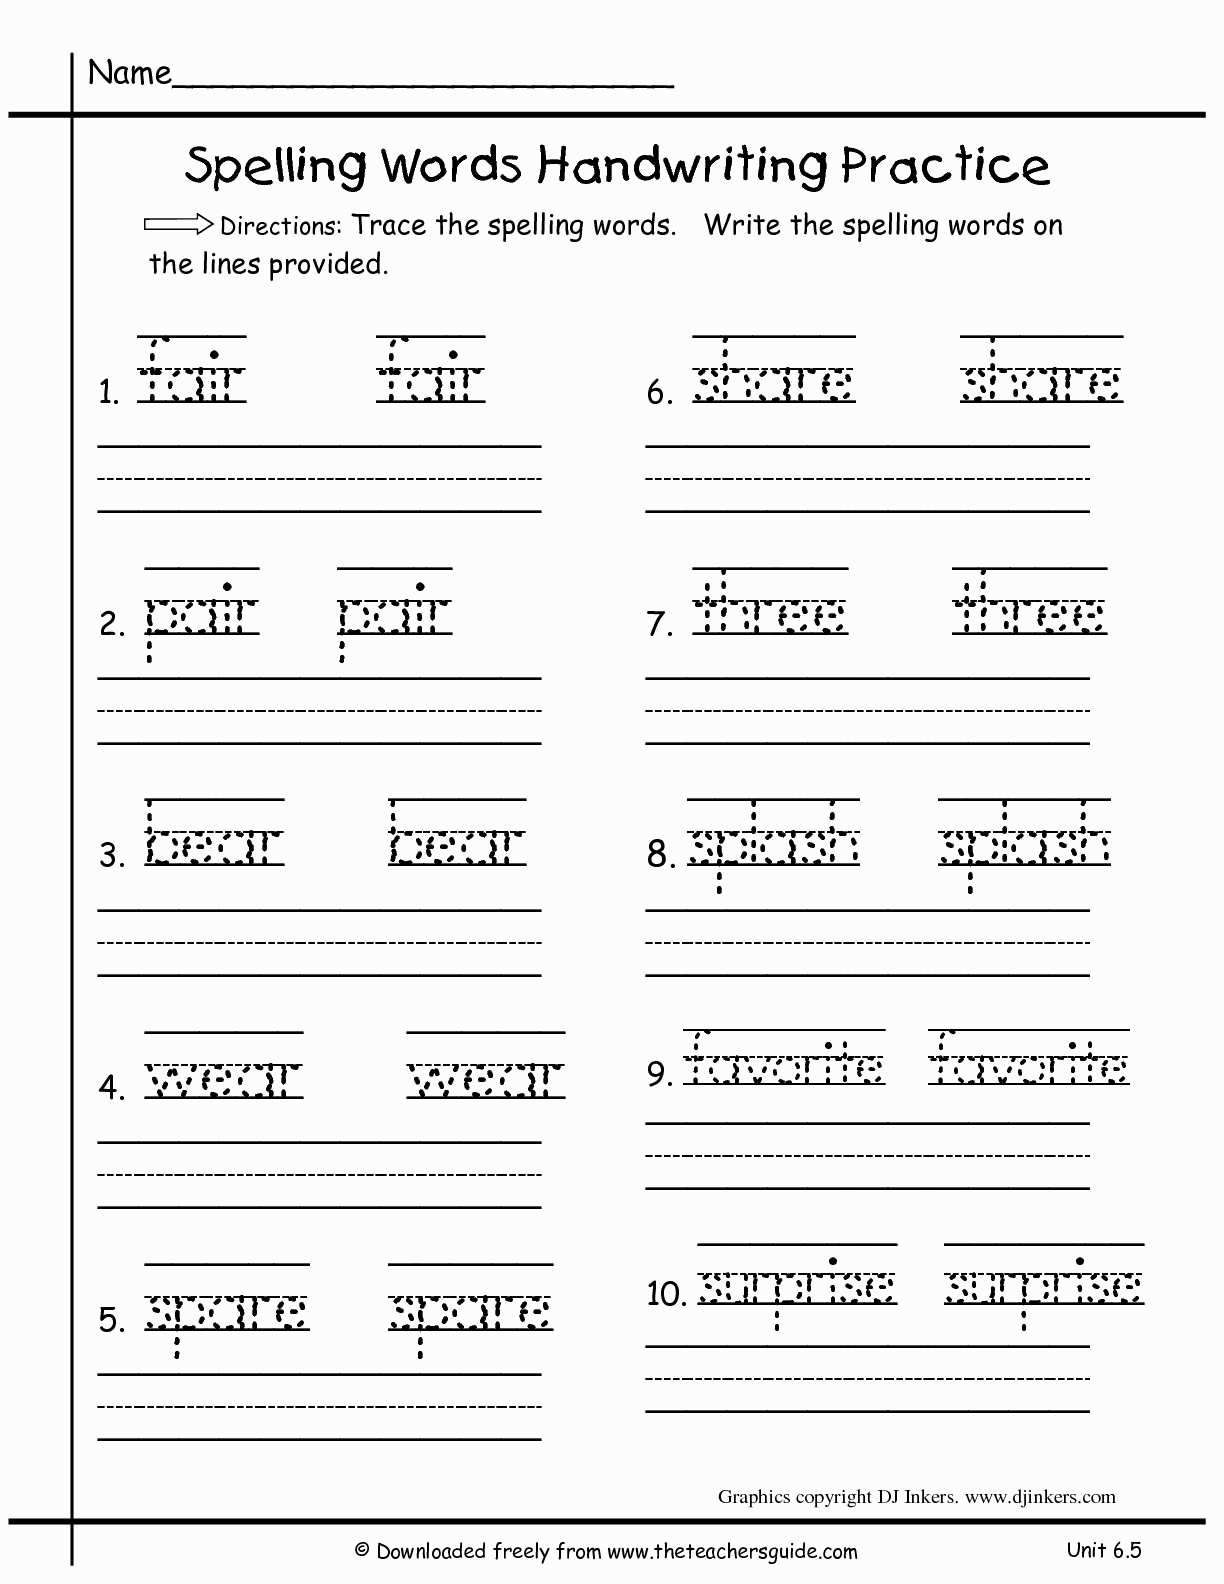 Worksheet : Free Printable Language Arts Worksheets For 1St Grade | Free Printable Worksheets For 1St Grade Language Arts